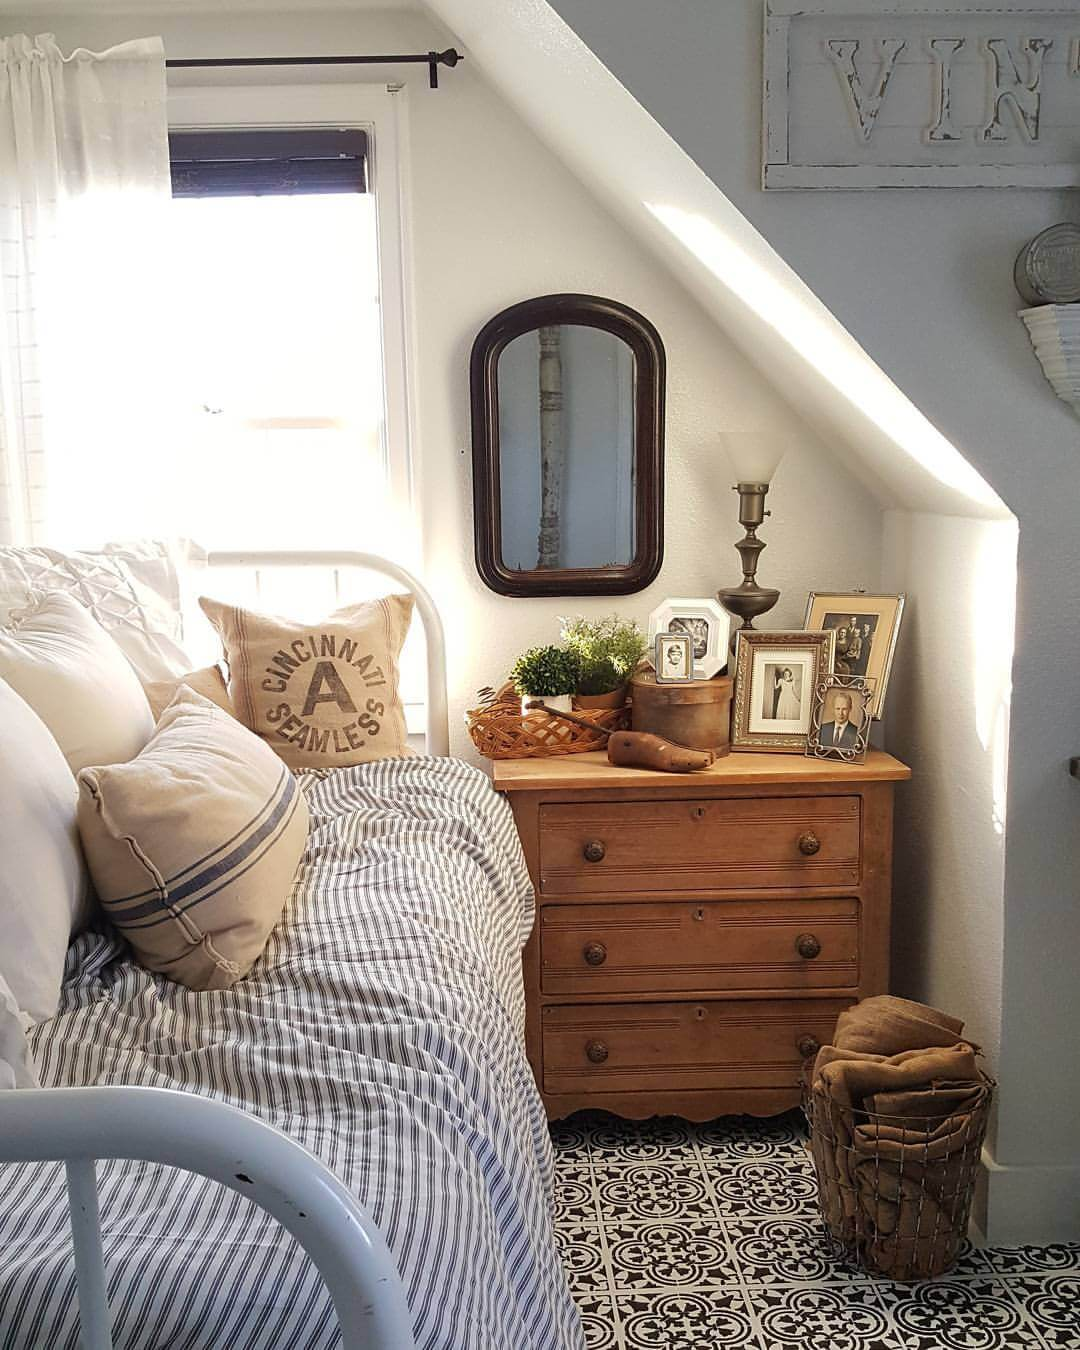 37 Best Small Bedroom Ideas and Designs for 2020 on Small Room Decoration  id=19665